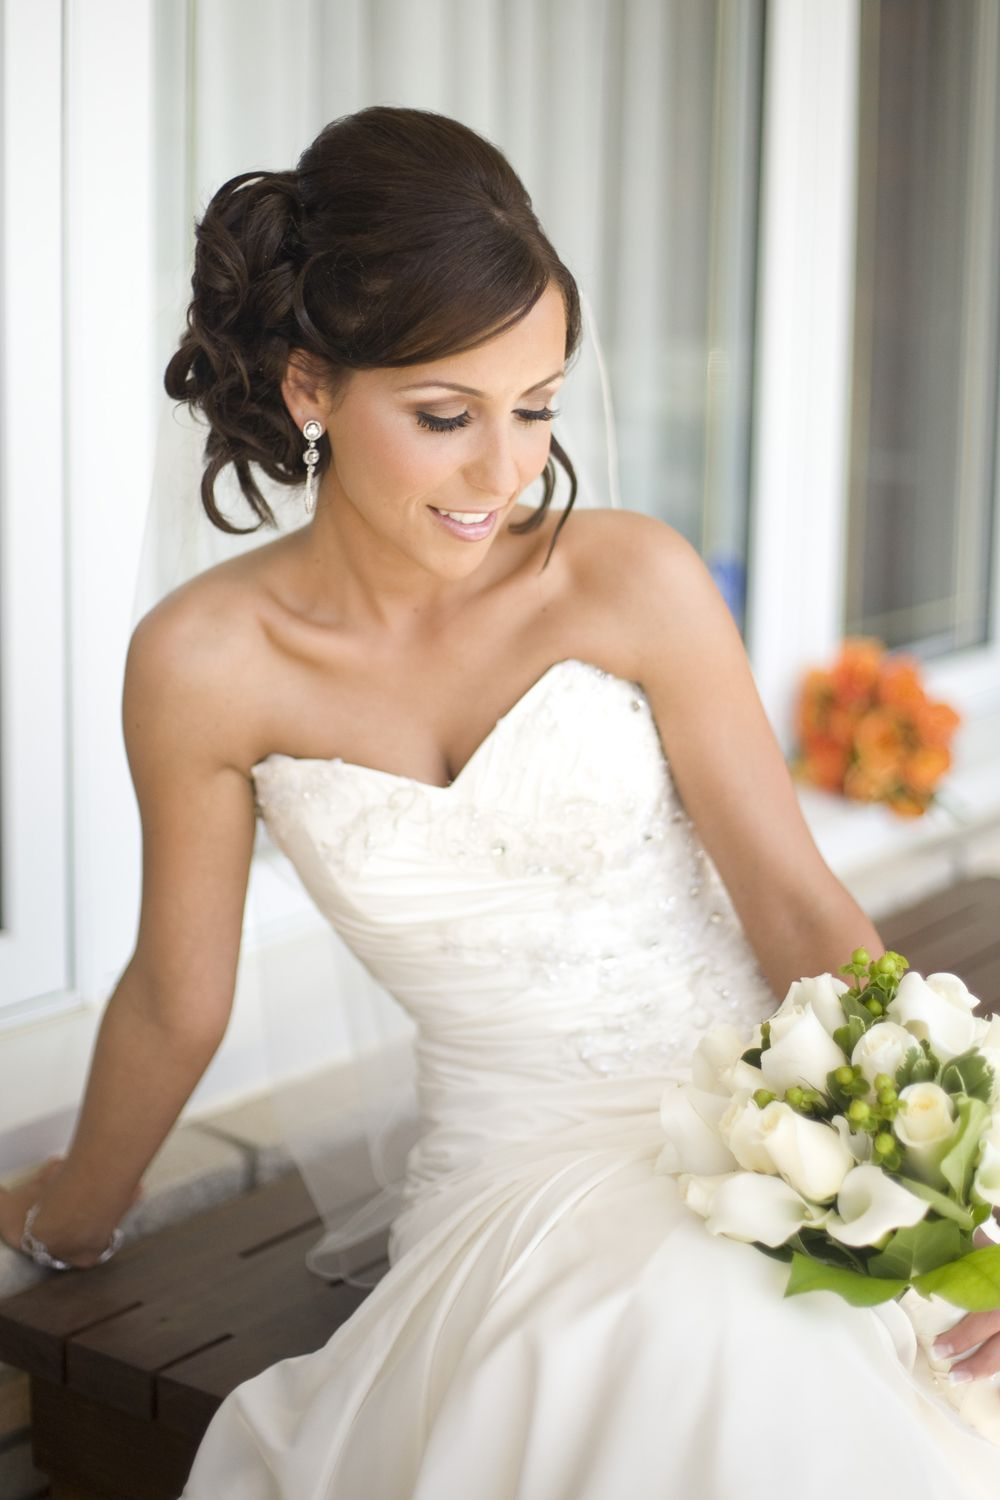 bridal hair and makeup in washington, dc | bridal hair and makeup